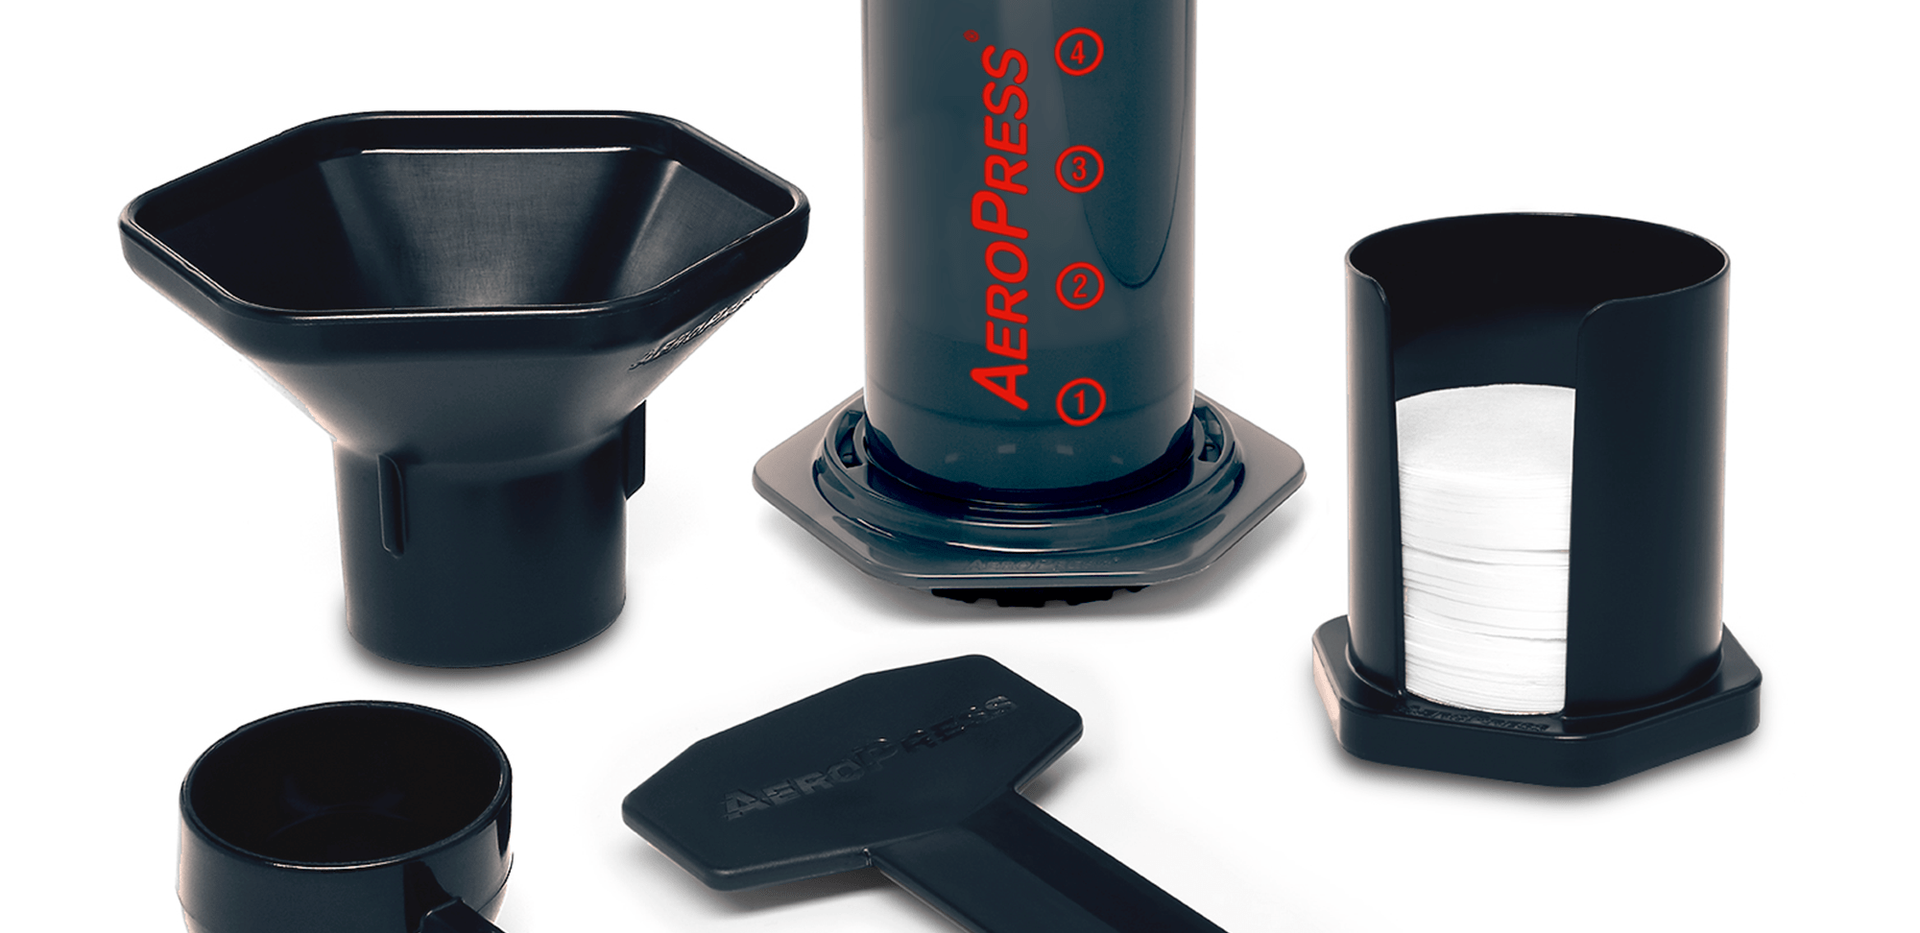 AeroPress components viewed from the sid